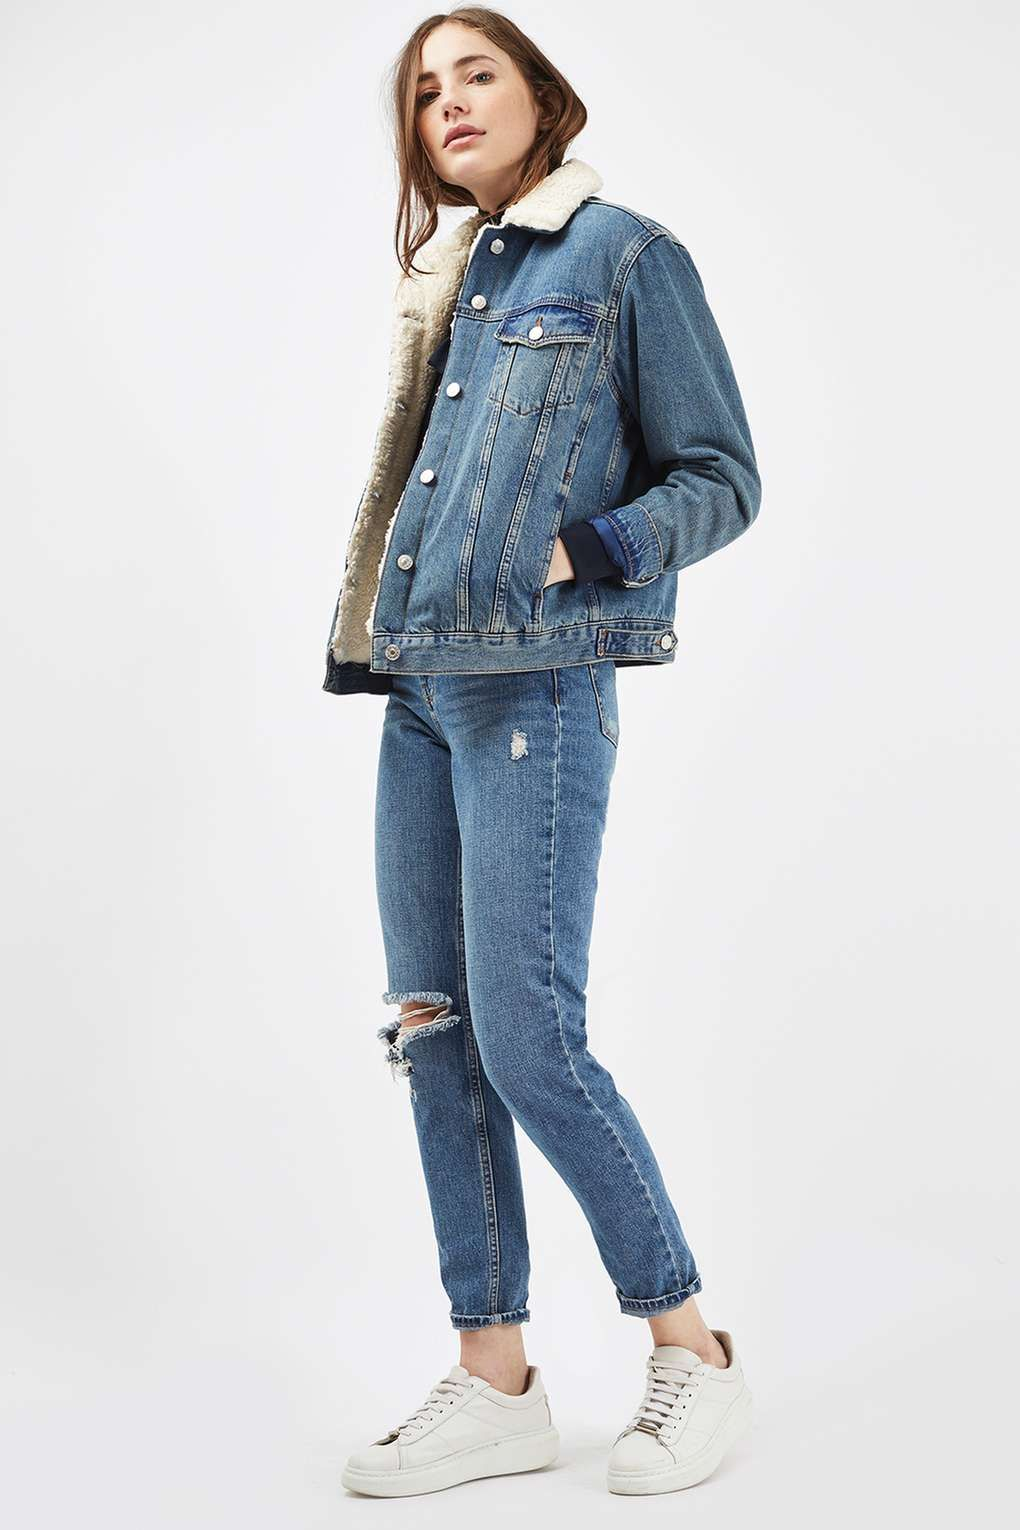 489d985280 Carousel Image 2 Borg Denim Jacket, Topshop Denim Jacket, Denim Shop,  Topshop Style